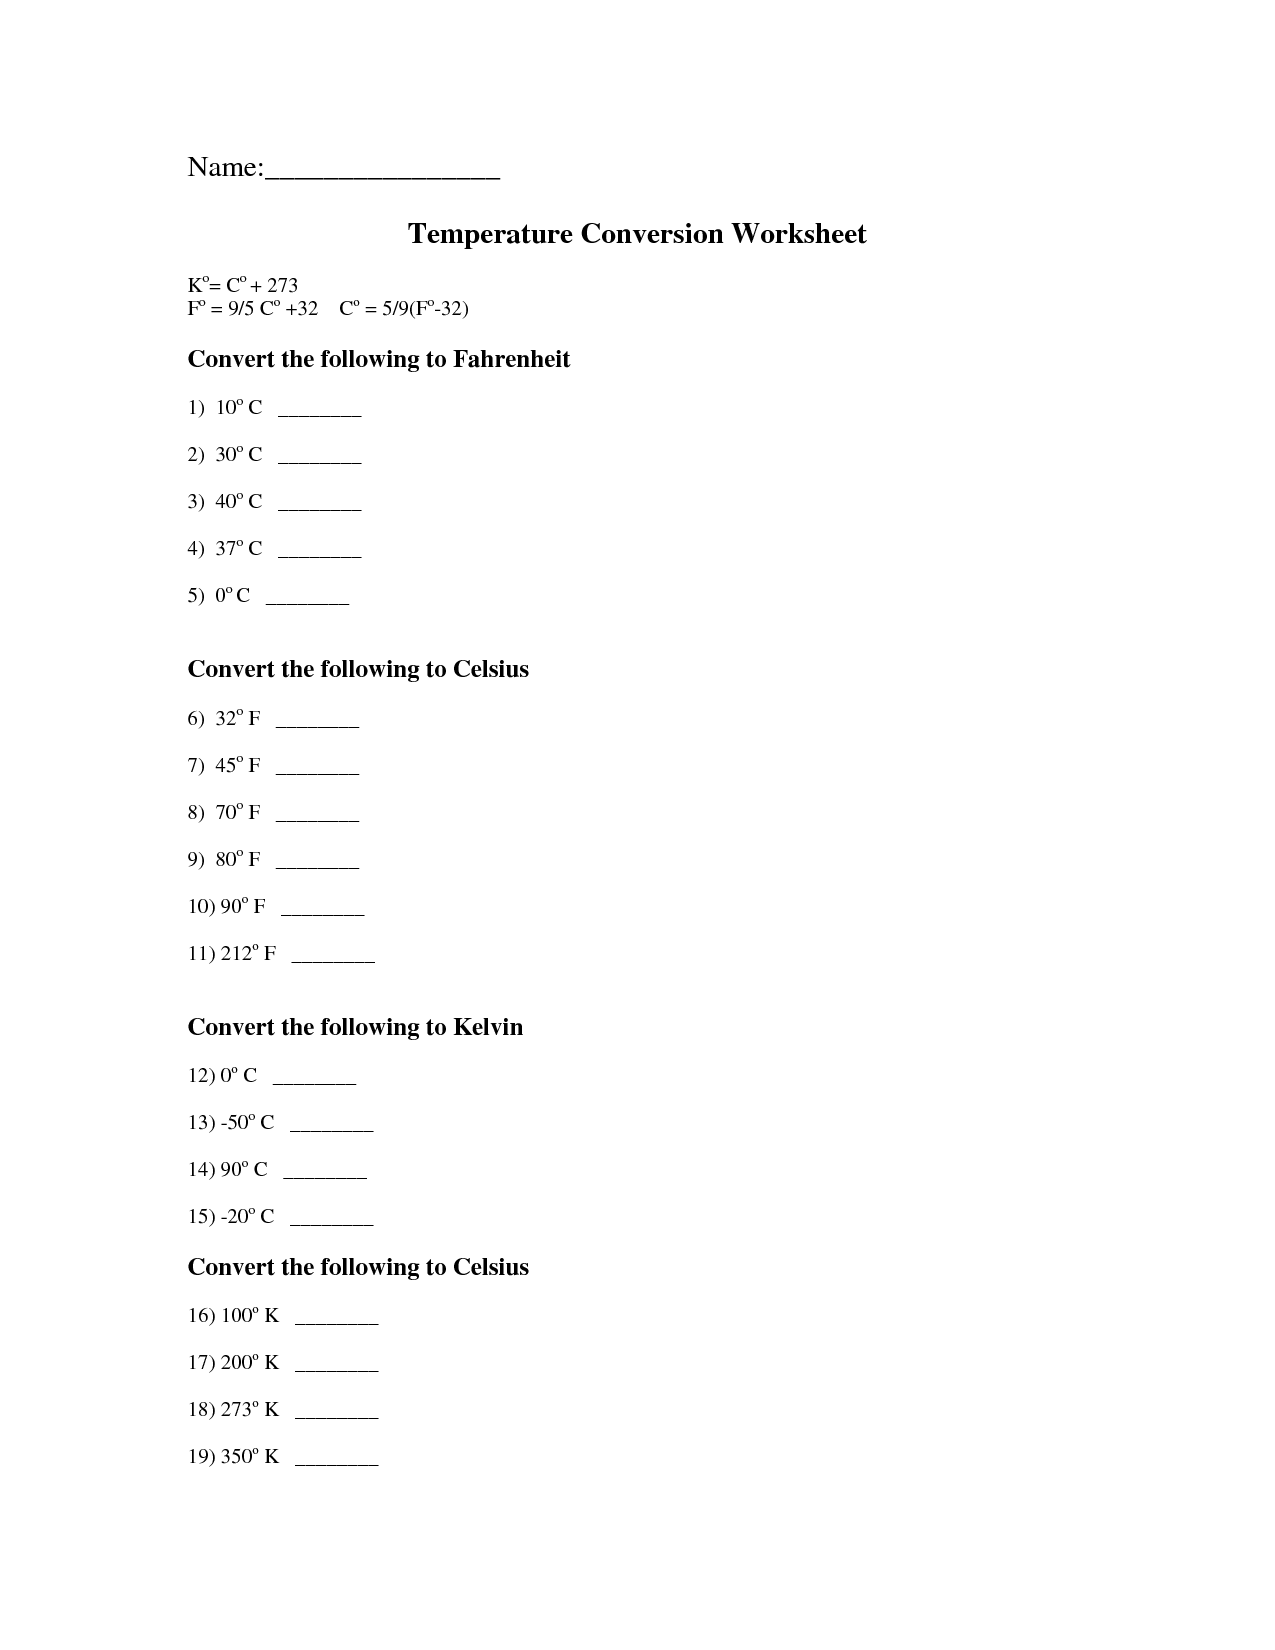 Temperature Conversion Worksheets Answers Worksheets Chemistry Worksheets Money Worksheets